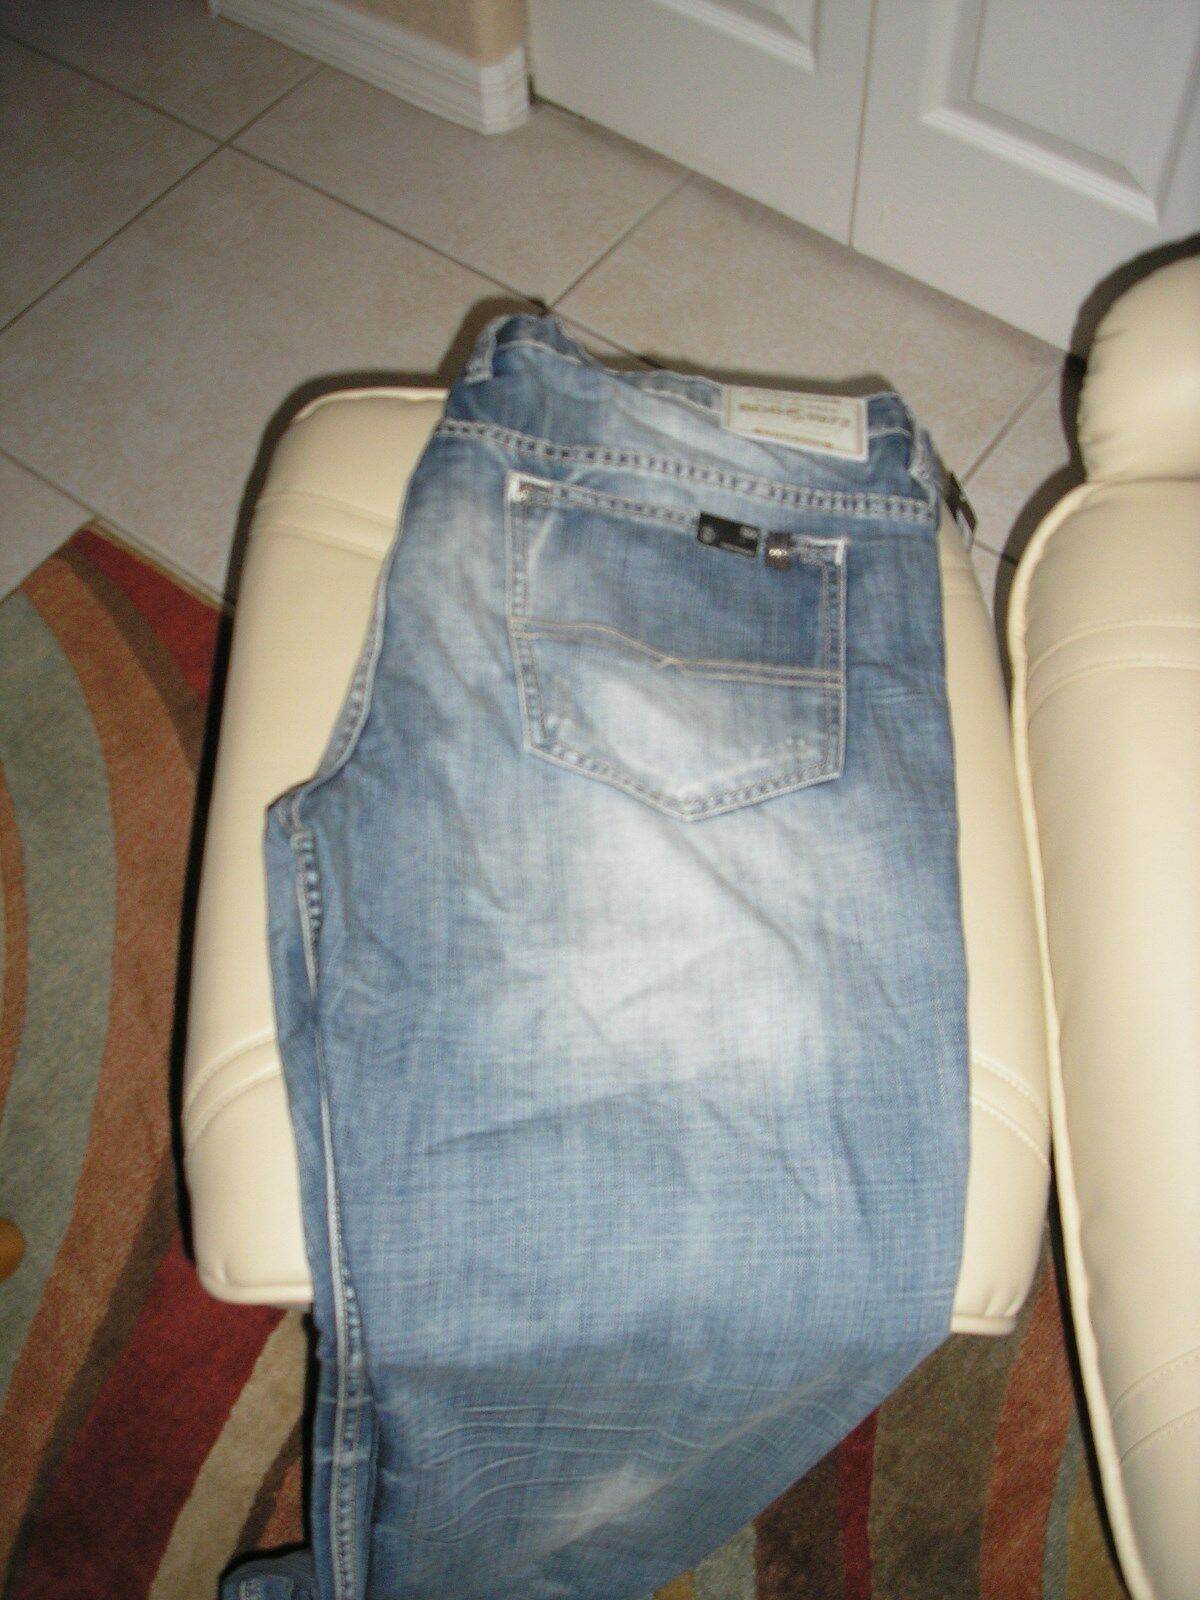 BUFFALO JEANS SIX W 40 L 32  N.W.T  LIST  GREAT DEAL